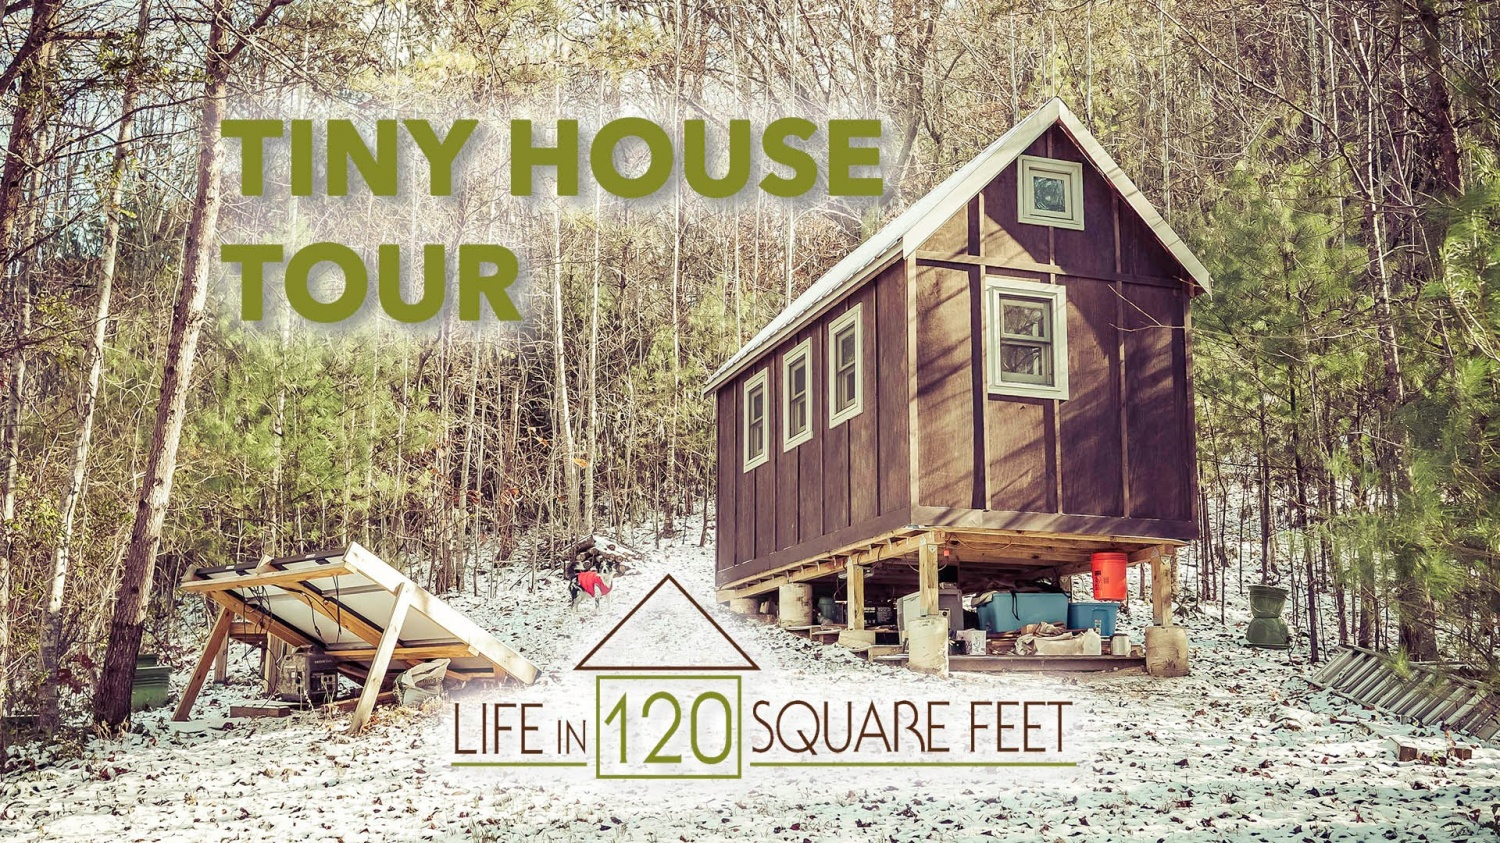 Laura Matts 120 Sq Ft Tiny House In Asheville Nc The Shelter